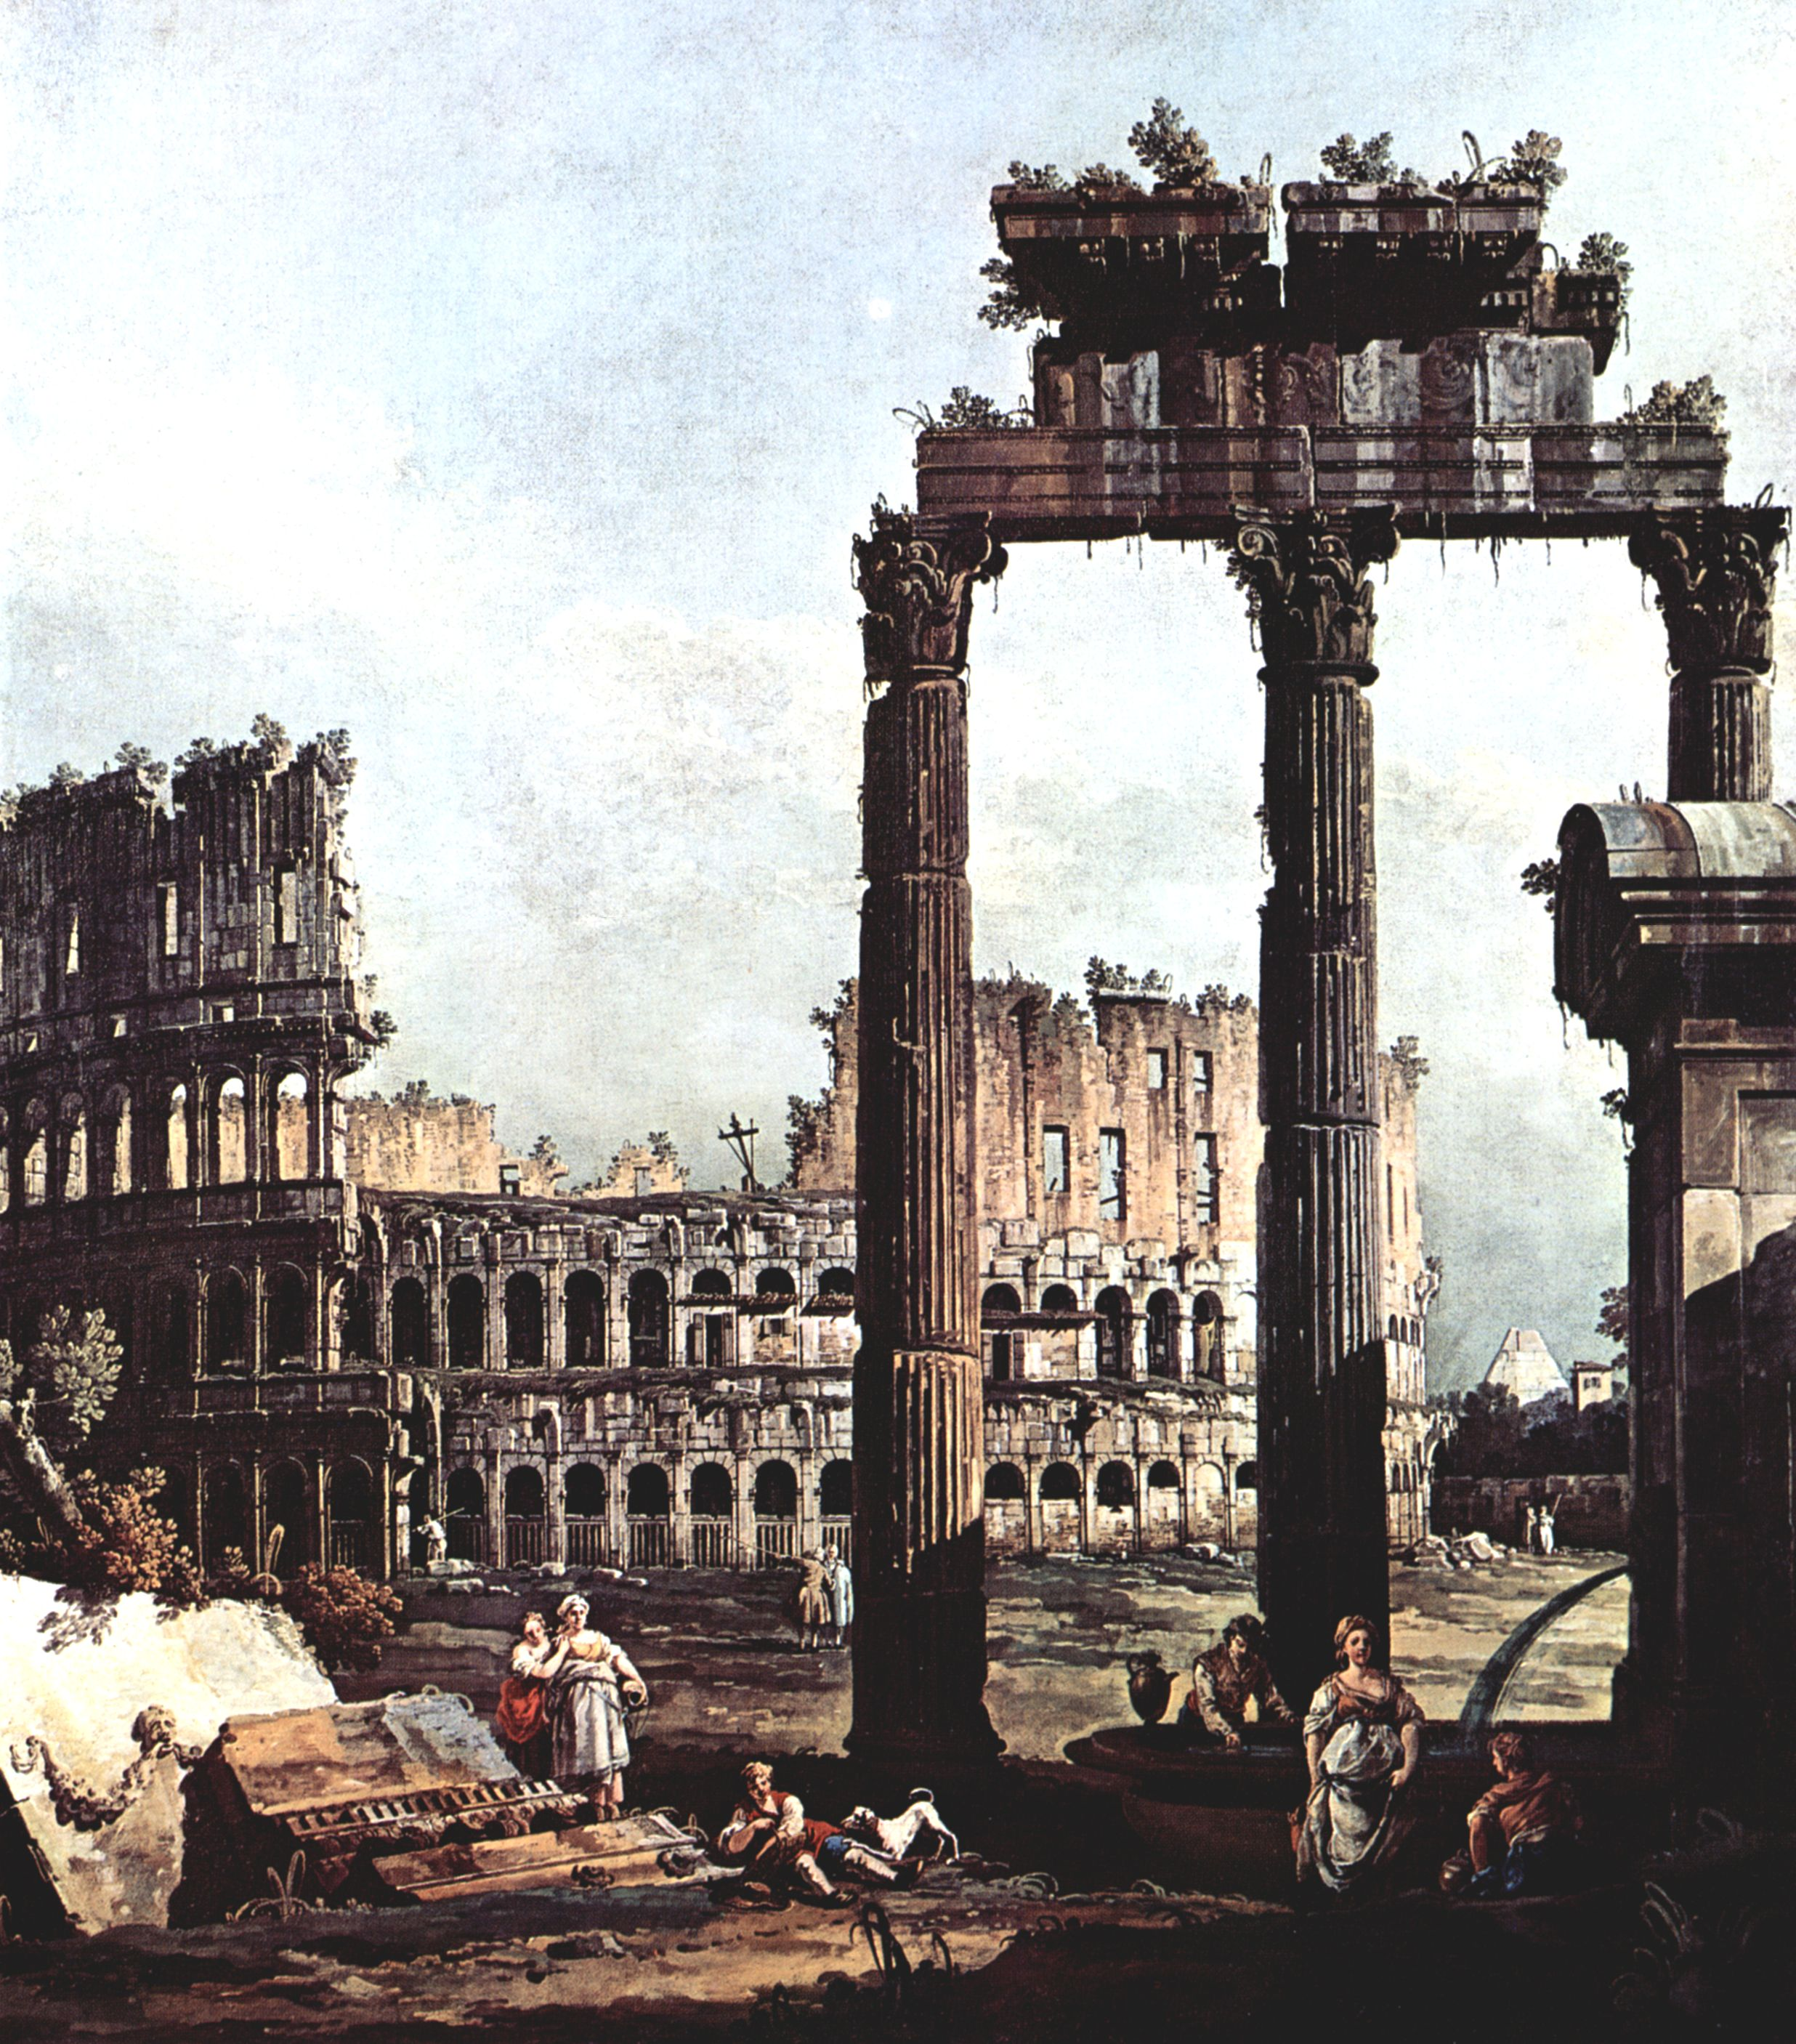 ruined columns, and figures, before the ruin of the Roman colosseum